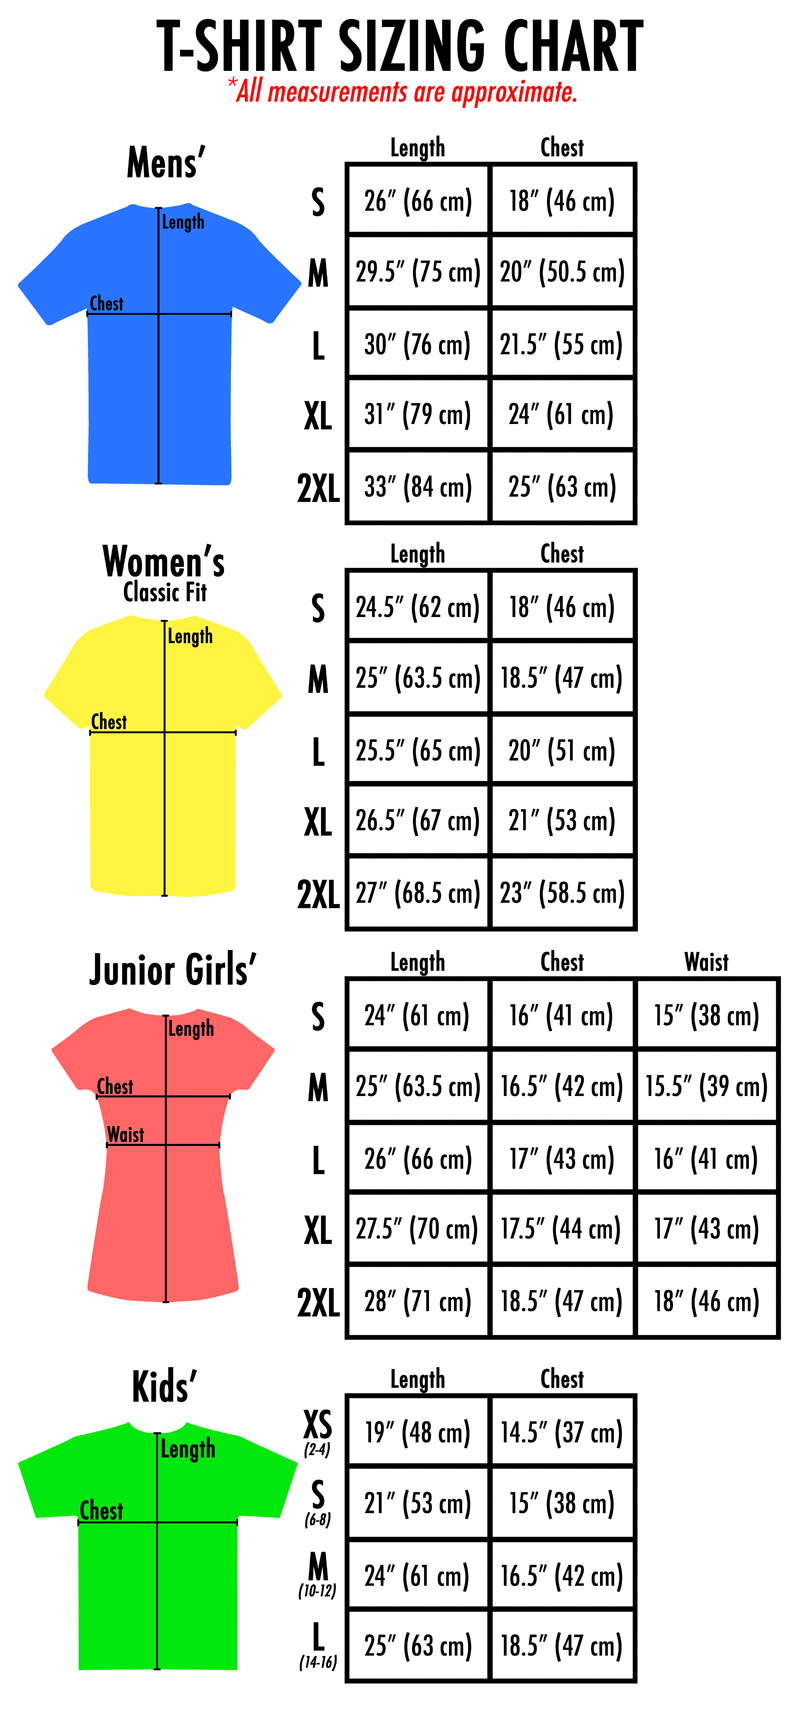 *Size estimates are based on Hanes Beefy T/Comfort Blend(Excluding Junior Girls). Depending on the style/design of the shirt, the sizes will differ. If you are unsure about sizing, please feel free to contact us.